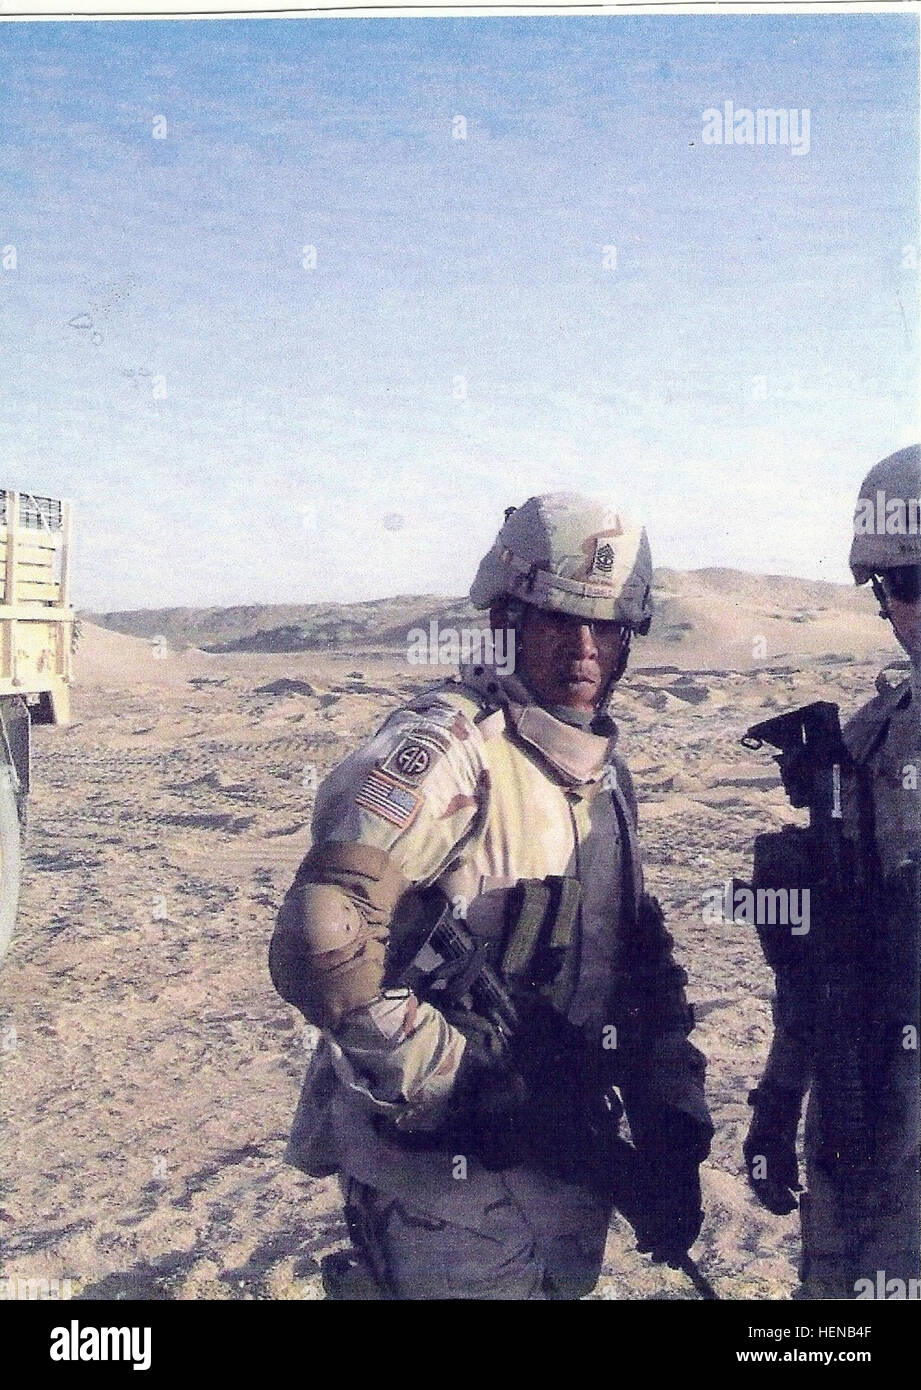 George Daniels, shown while deployed with the 82nd Airborne Division. Daniels was a part of Operation Desert Storm. - Stock Image